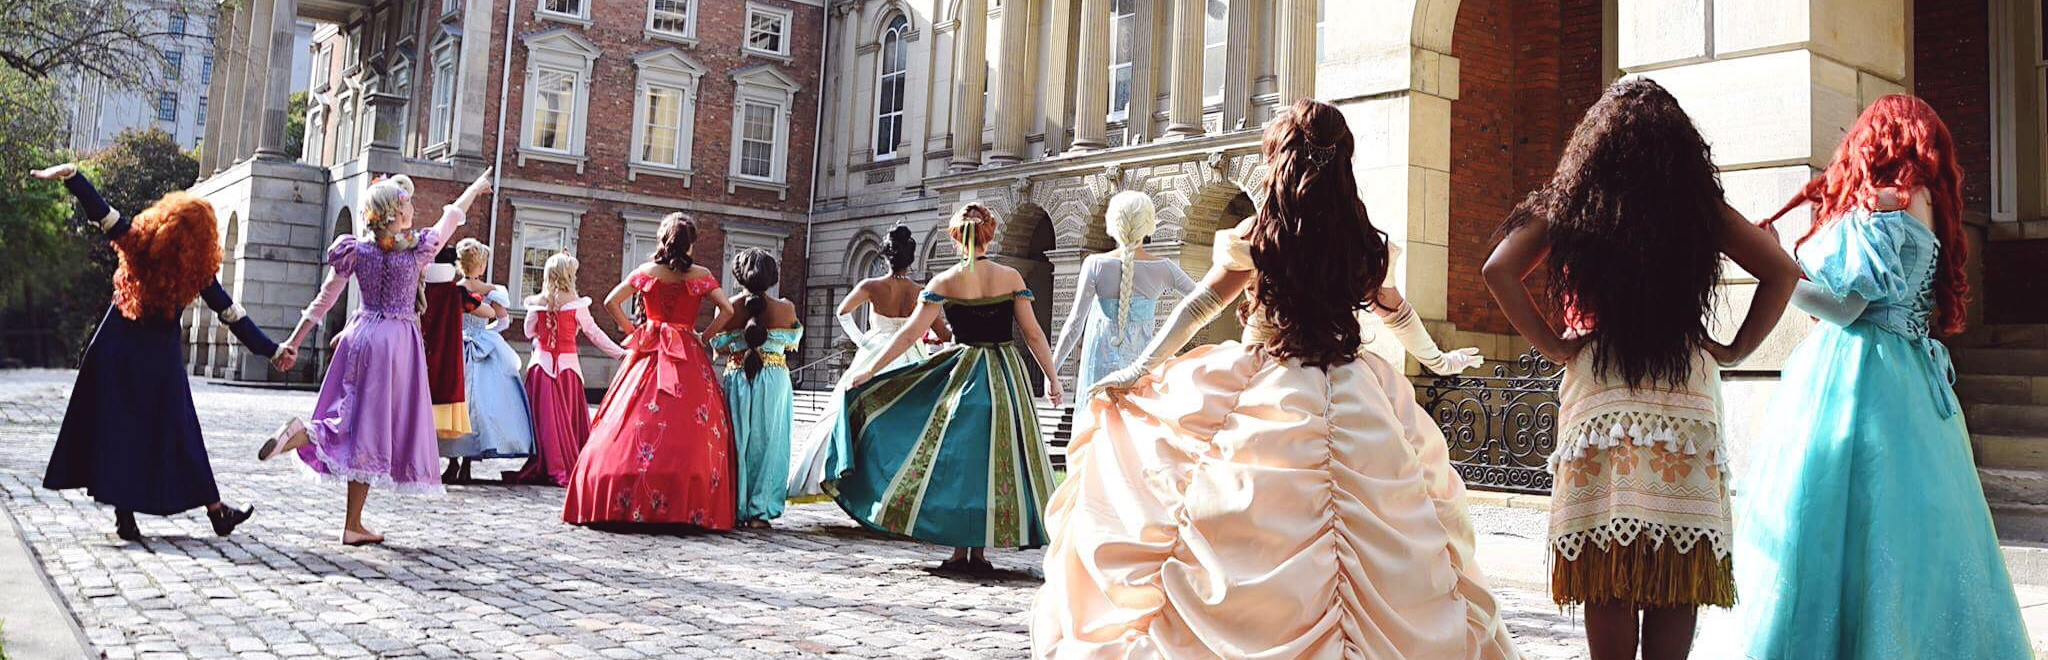 Forever Fairest Princesses looking at castle